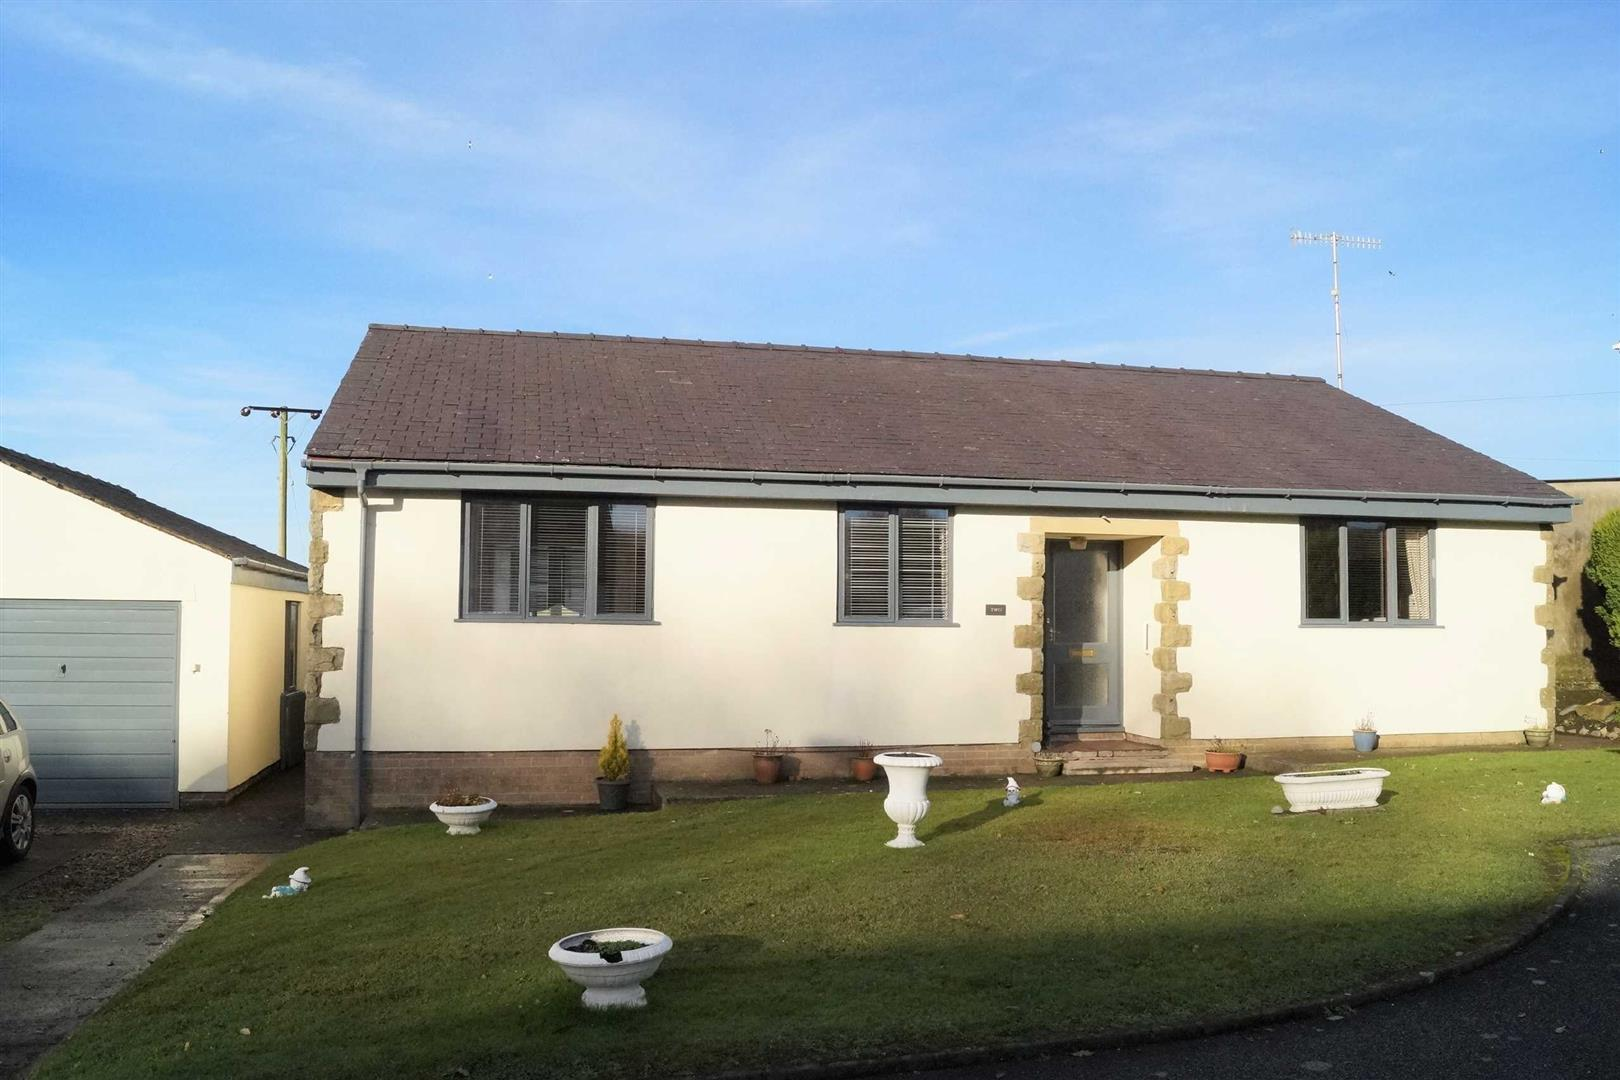 Bro Dwylan, Tudweiliog - £199,950/Reduced to